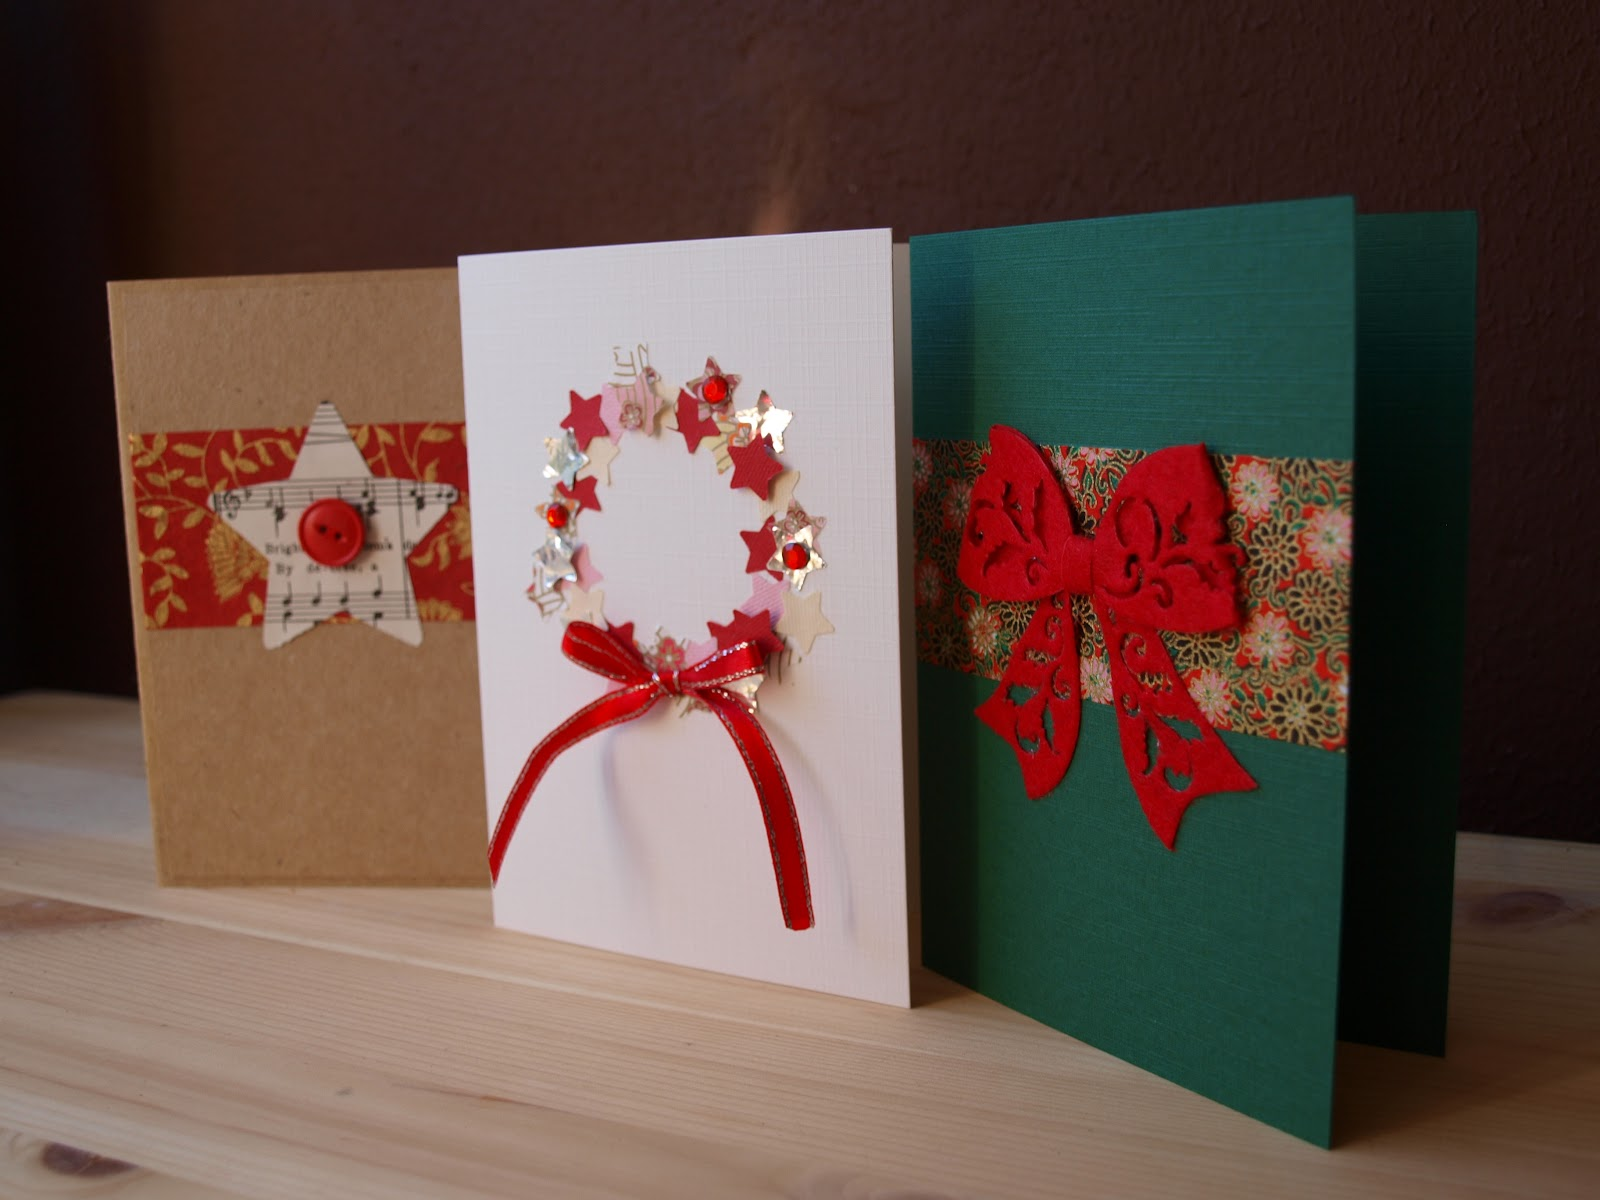 Diy Christmas Cards Ideas 2014 To Make At Home: easy christmas decorations to make at home